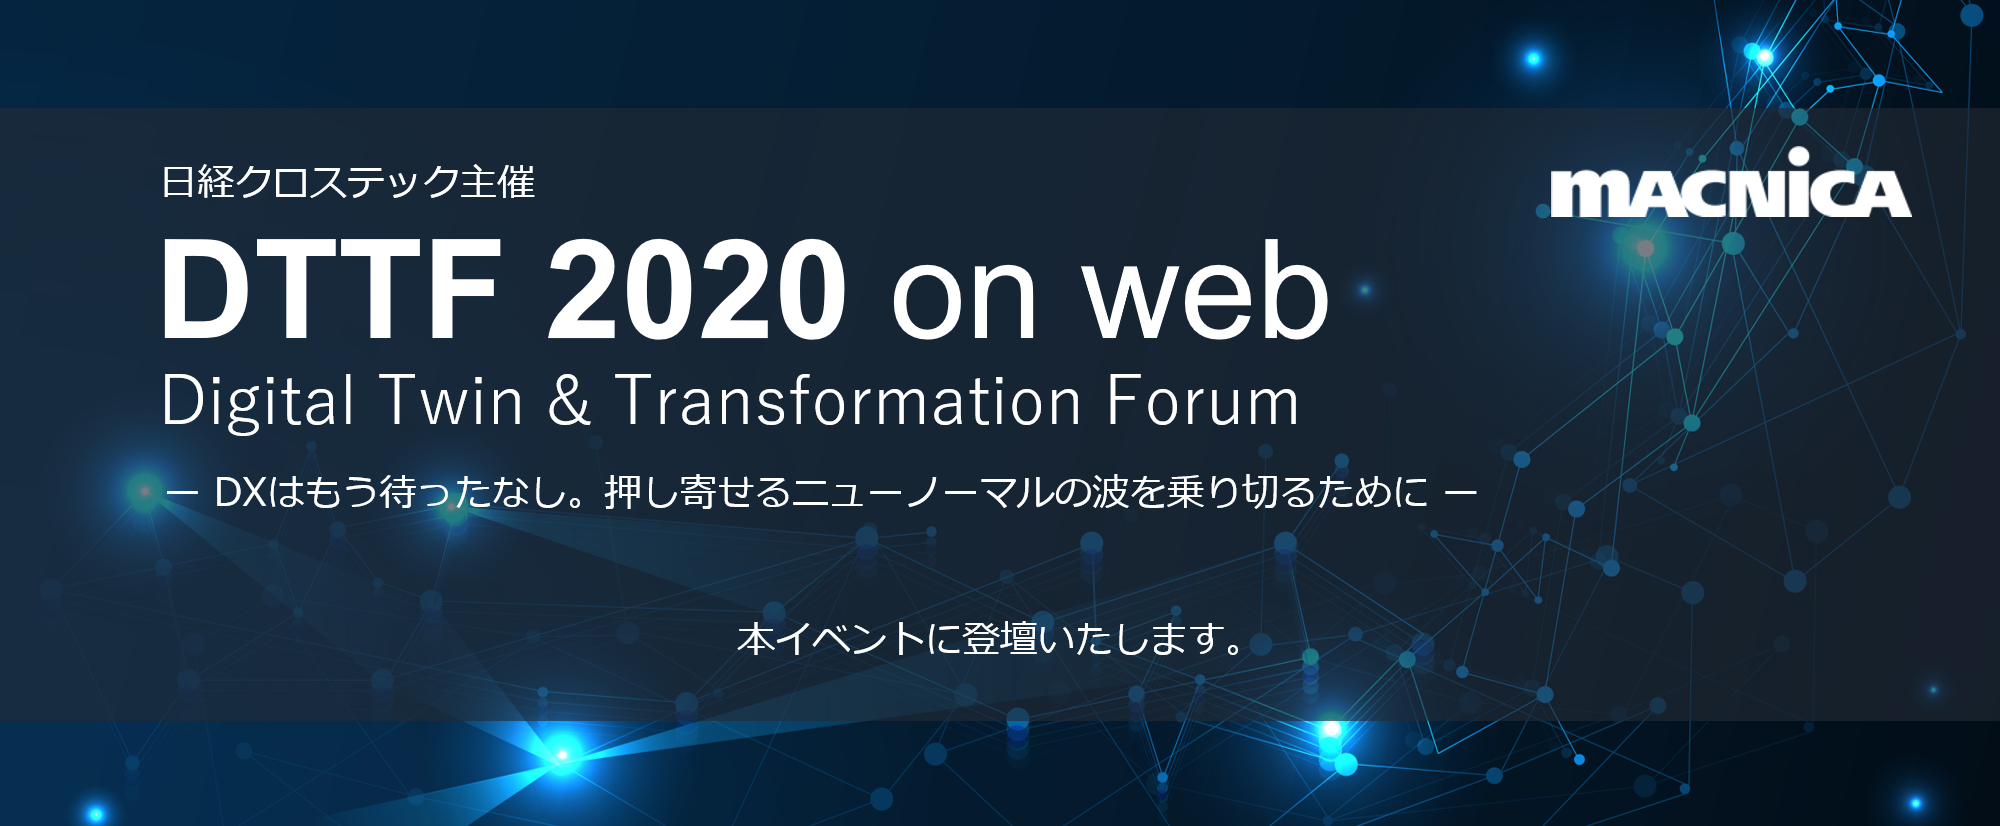 DTTF(Digital Twin&Transformation Forum)2020 on webに登壇します。